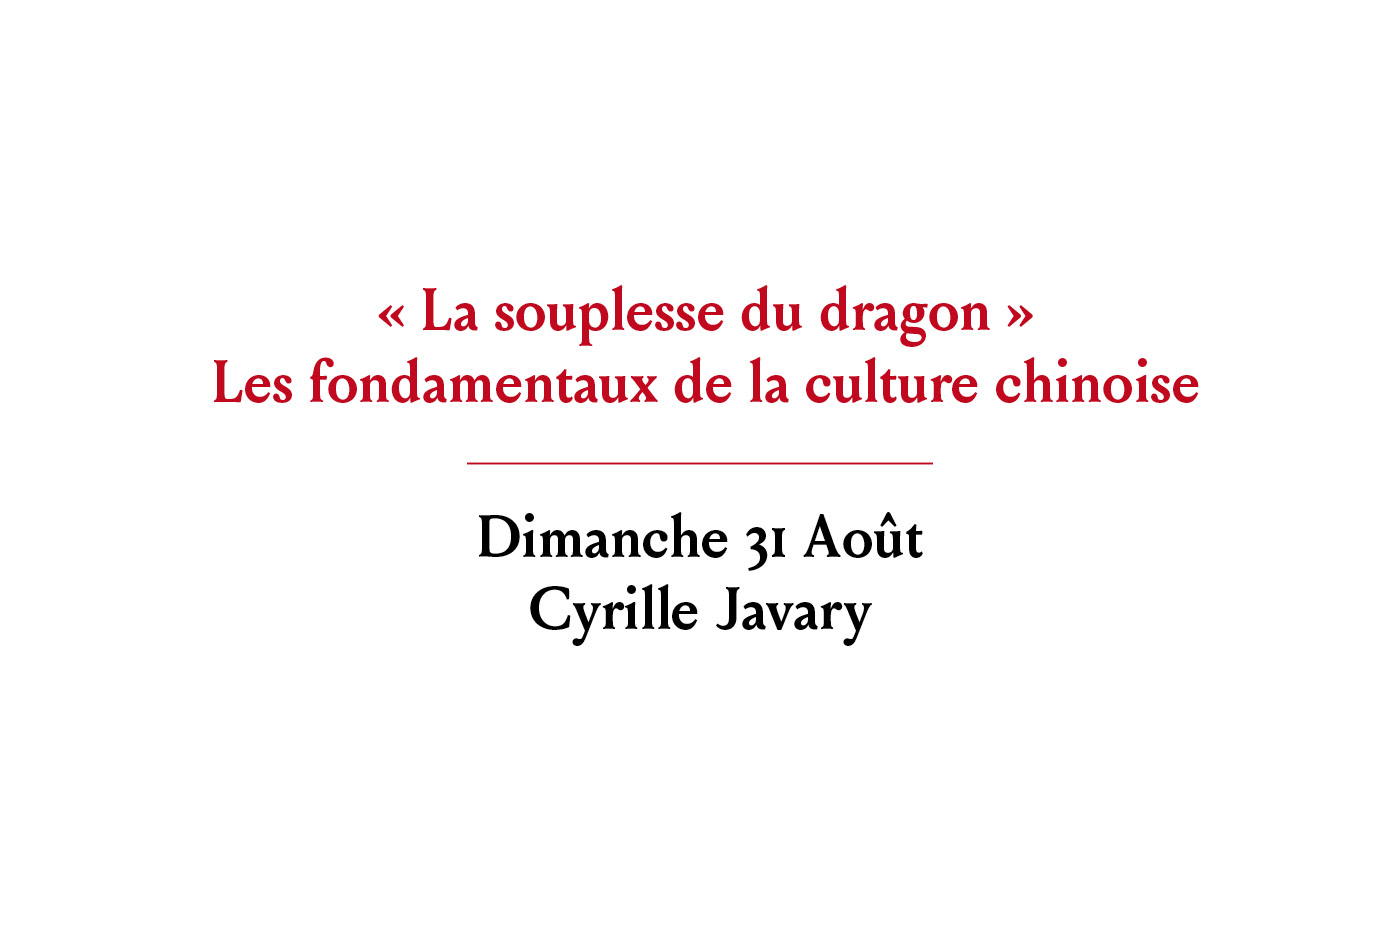 Rencontre avec Cyrille Javary